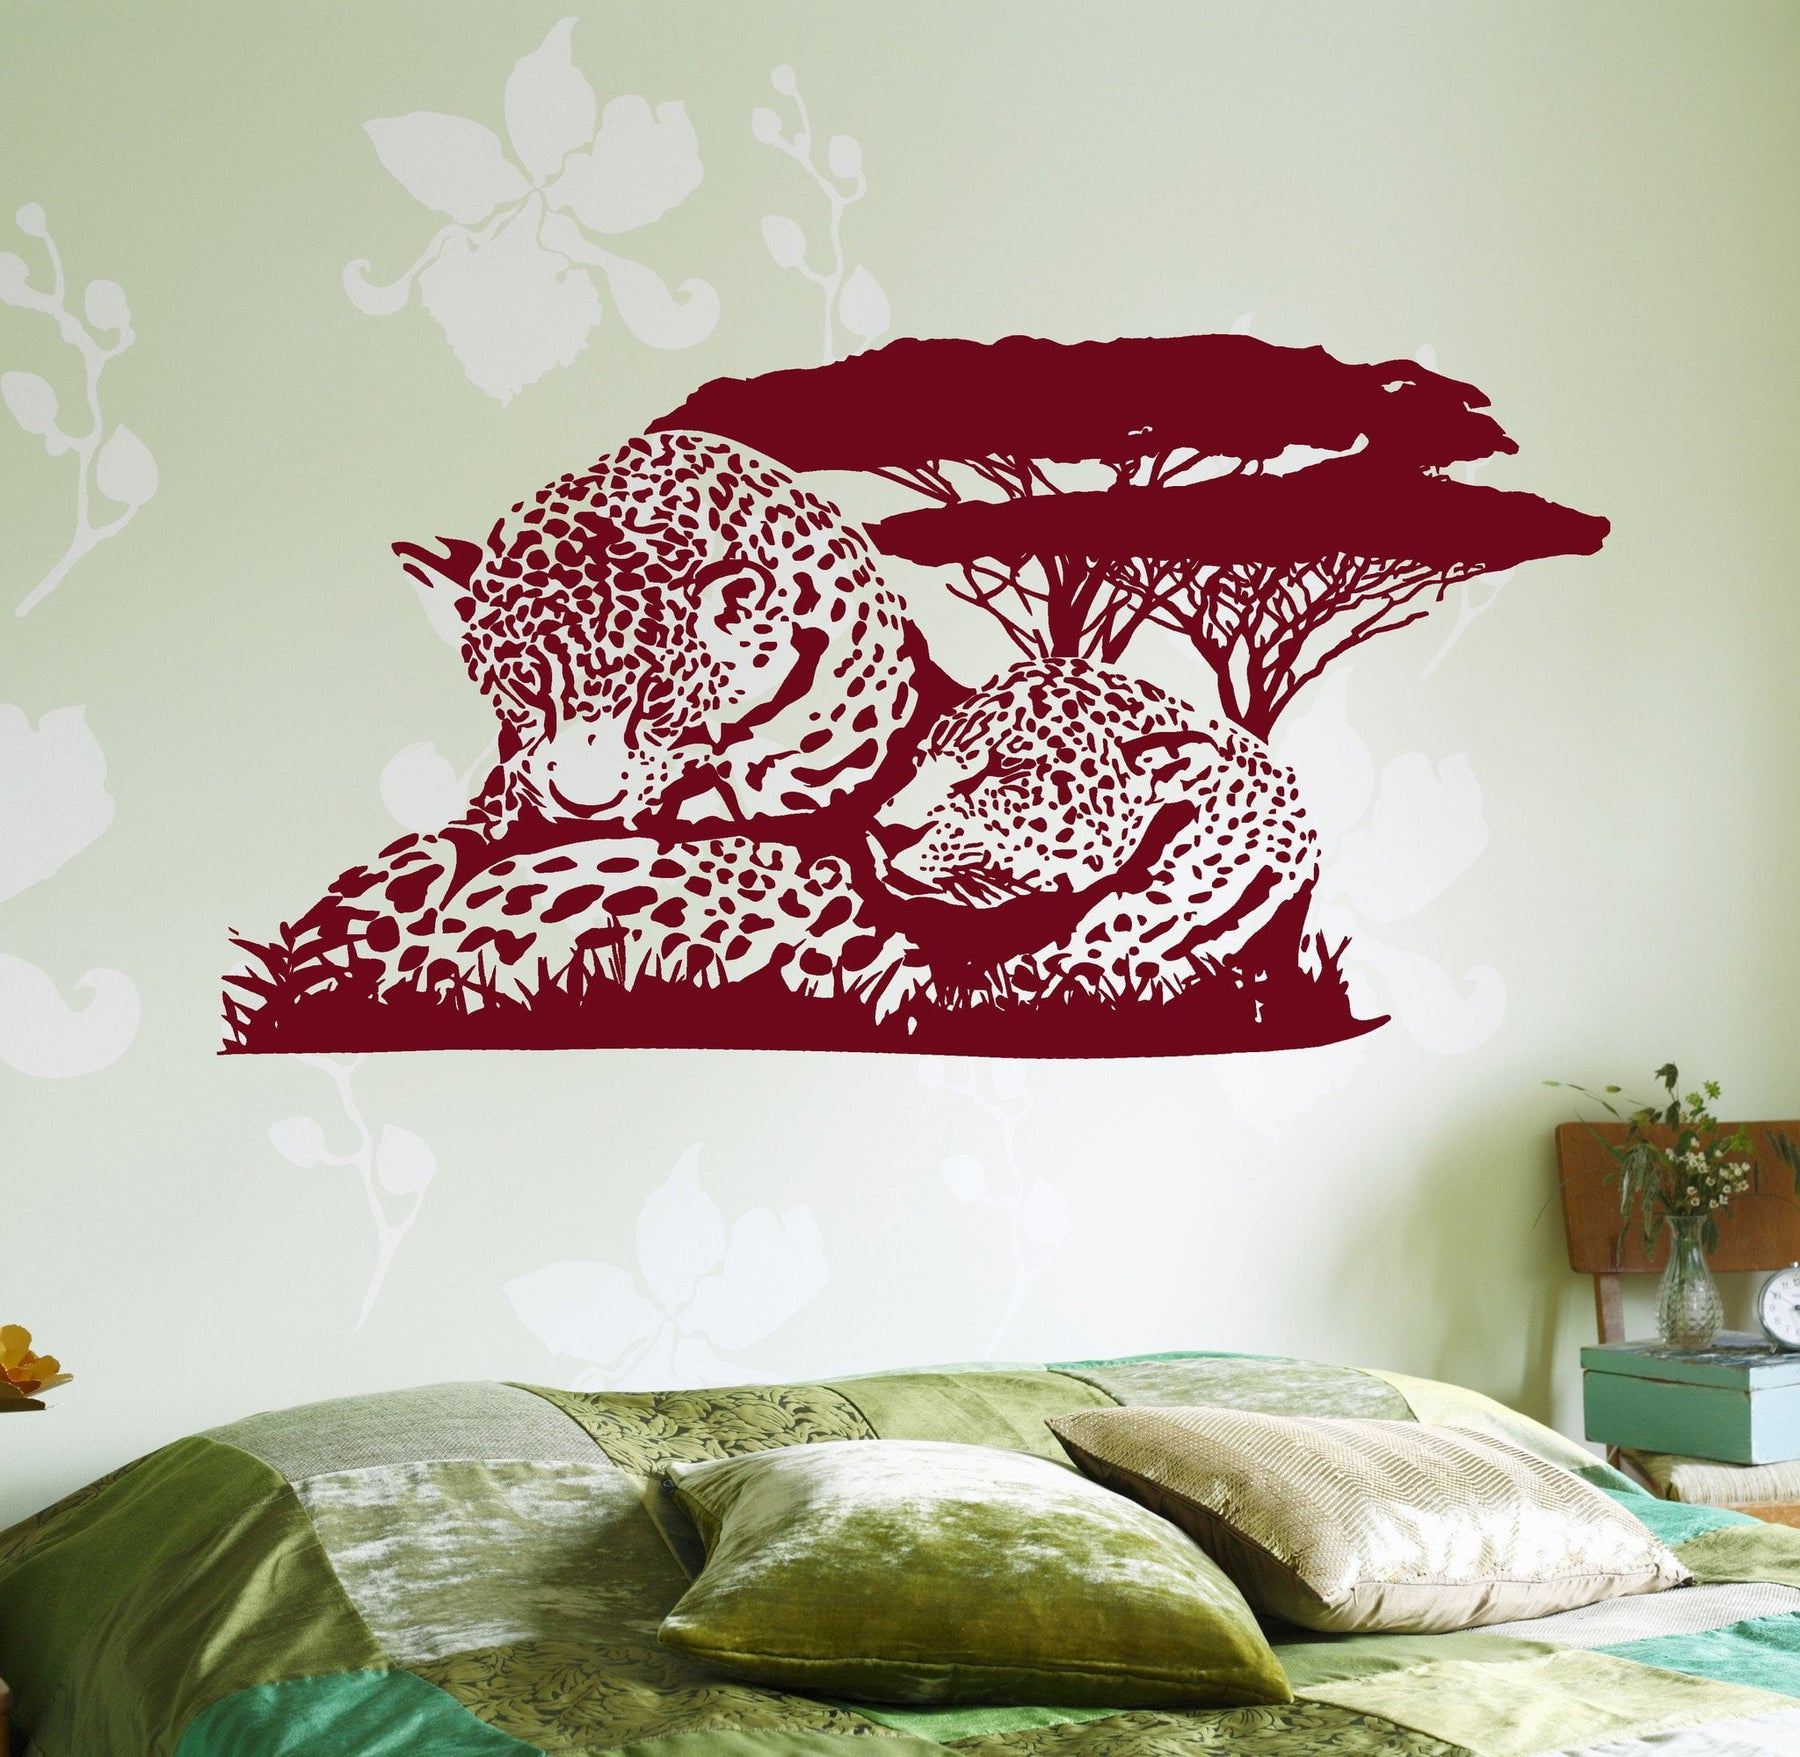 Wall Vinyl Decal Cheetah Leopard Family Romantic Love Jungle Decor Unique Gift z3668